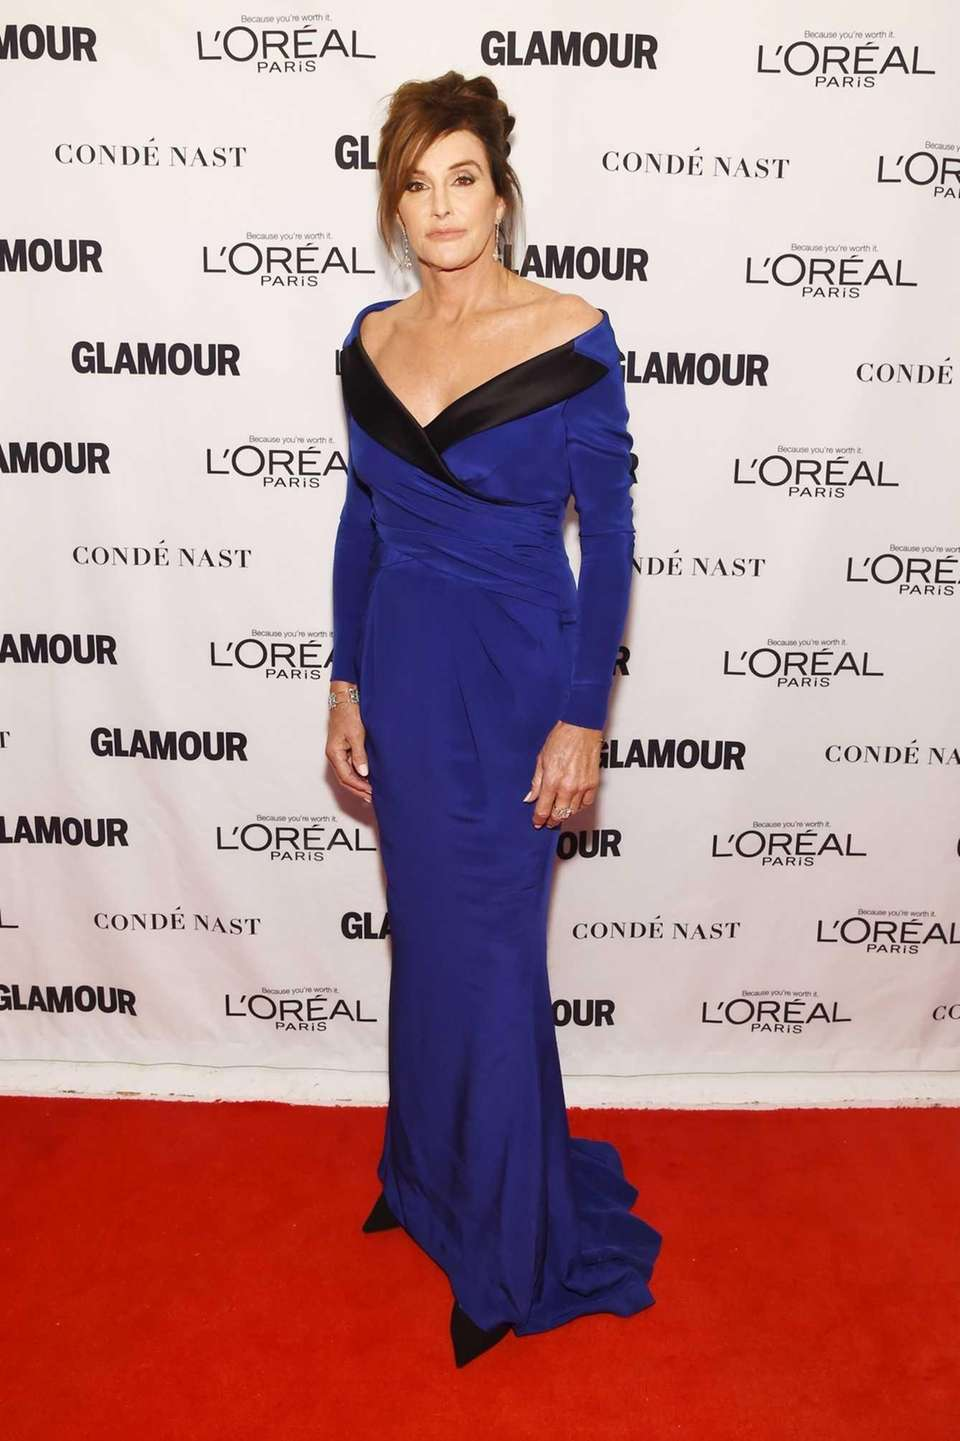 Caitlyn Jenner at the 2015 Glamour Women of